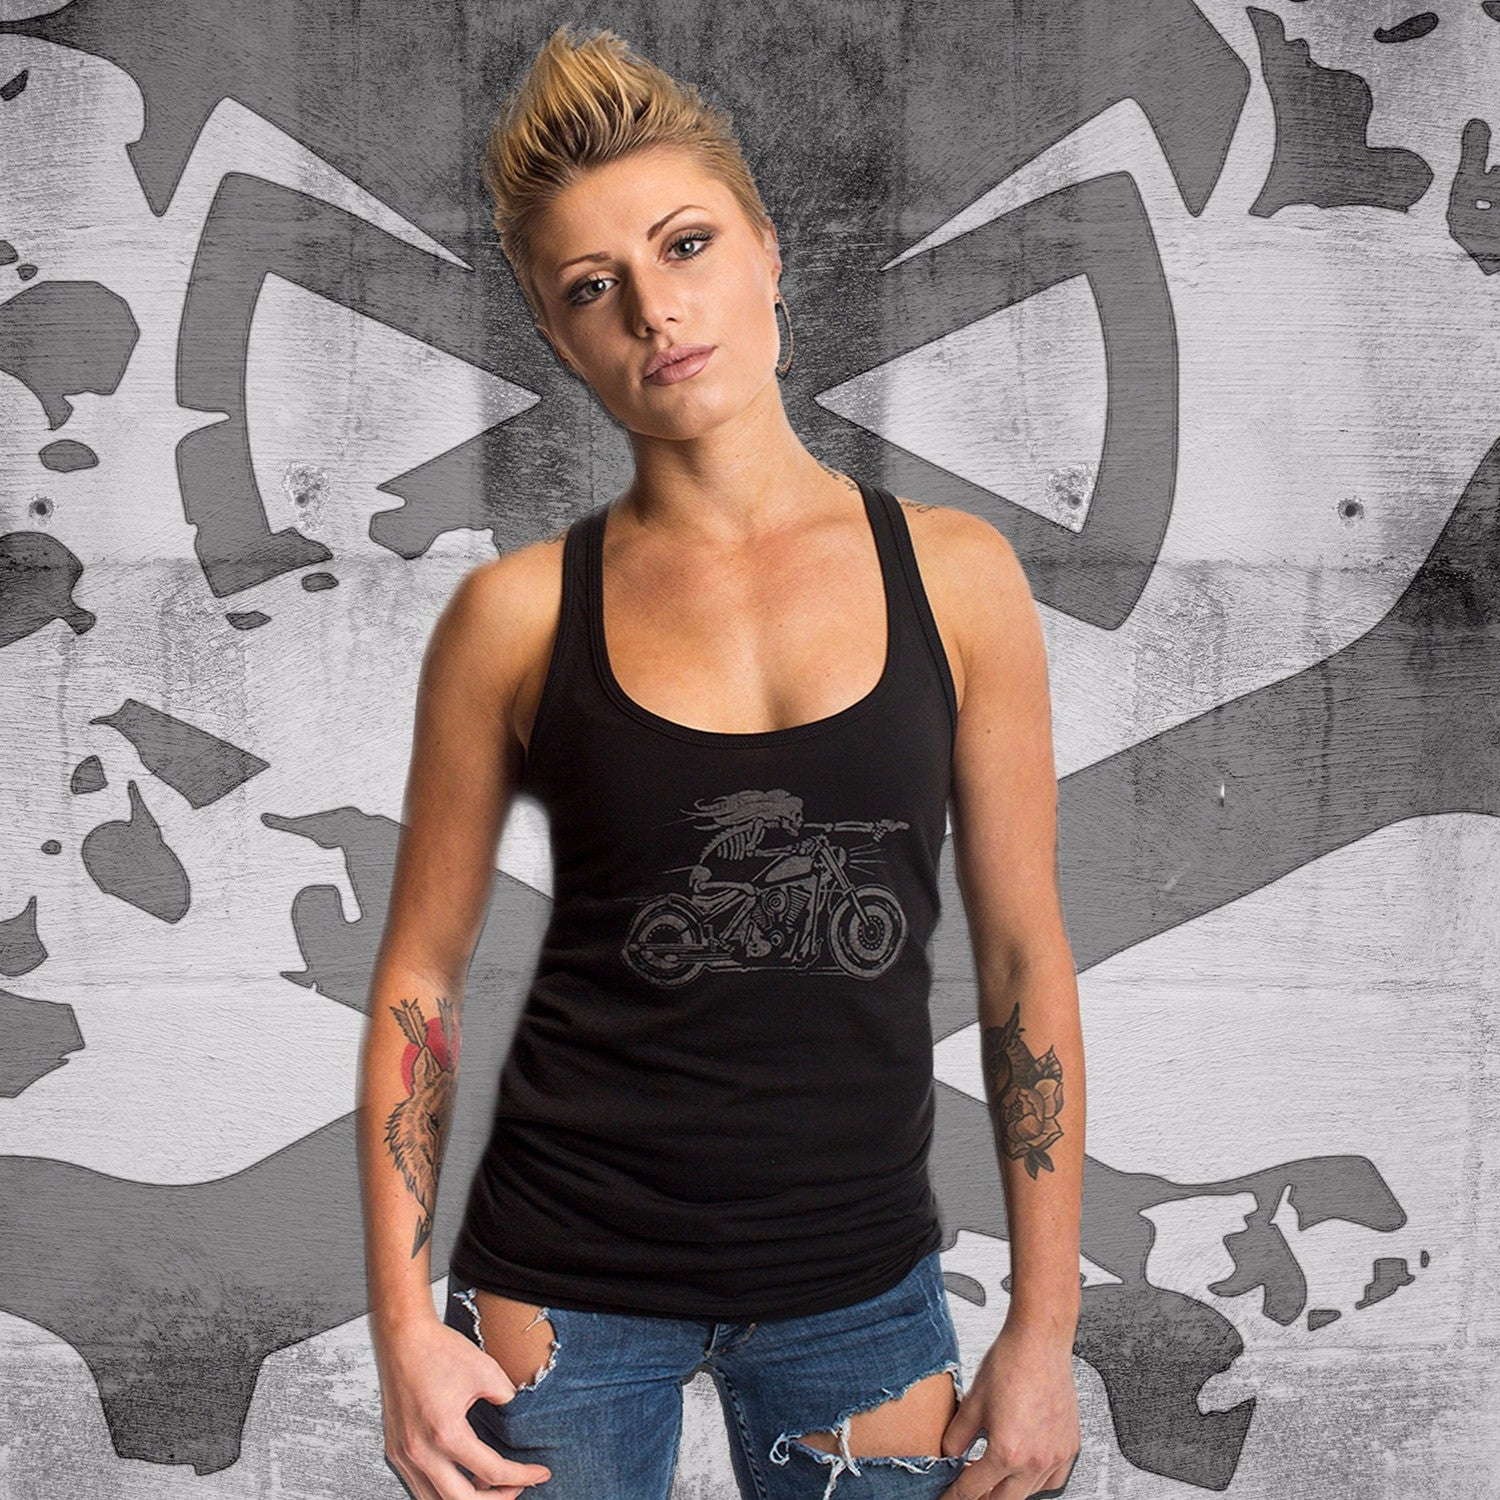 Motorcycle Tank - Black - T-Shirts - Pipe Hitters Union